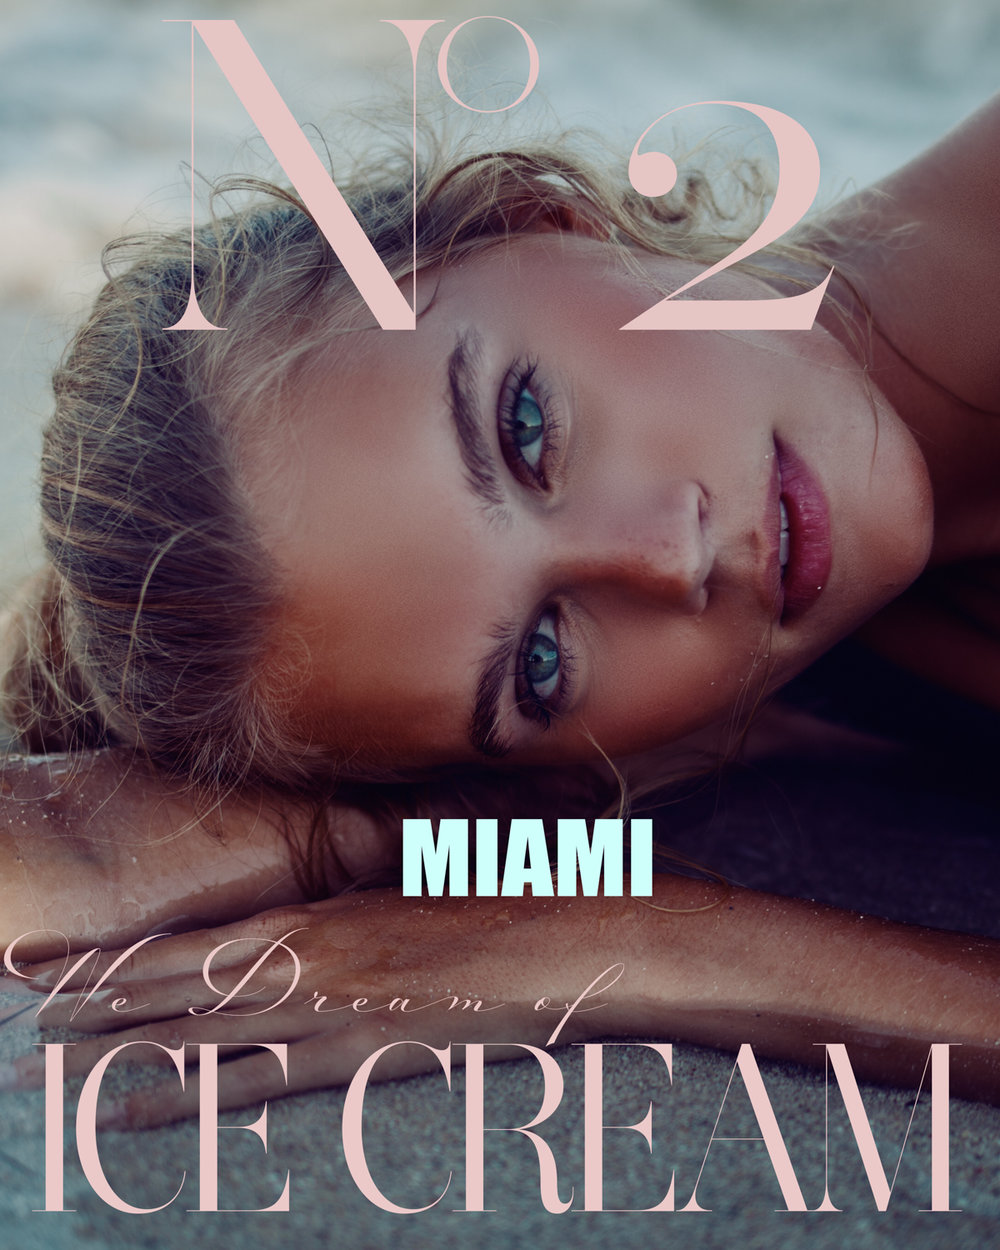 Babes of Miami We dream of ice cream (1 of 2).JPG